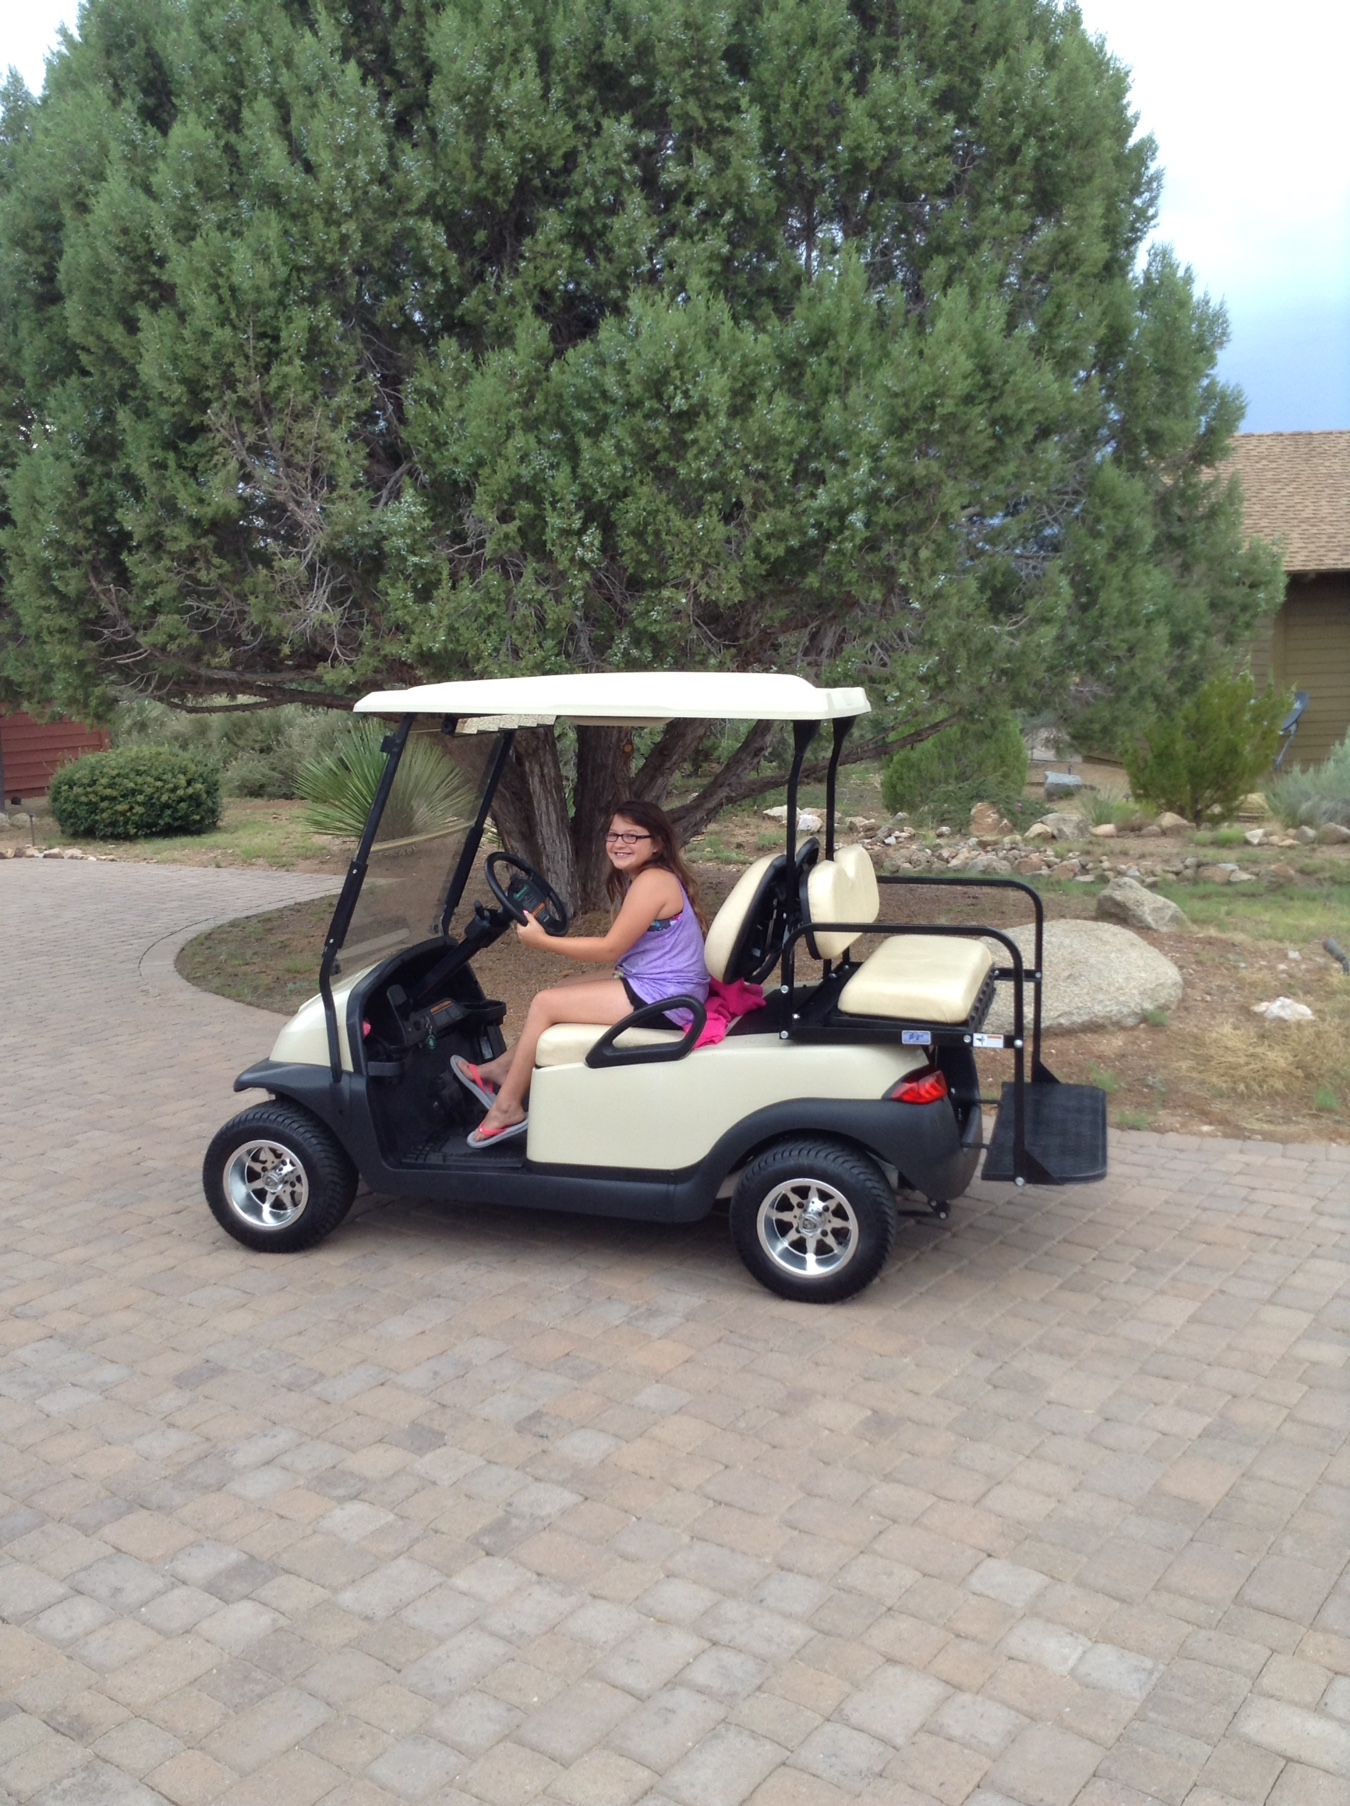 Need Wiring Diagram 2014 Cc Precedent 2011 Club Car I Have Been A Member For While And Totally Enjoy Reading The Many Posts By Members Of This Forum Picture My Granddaughter At Wheel